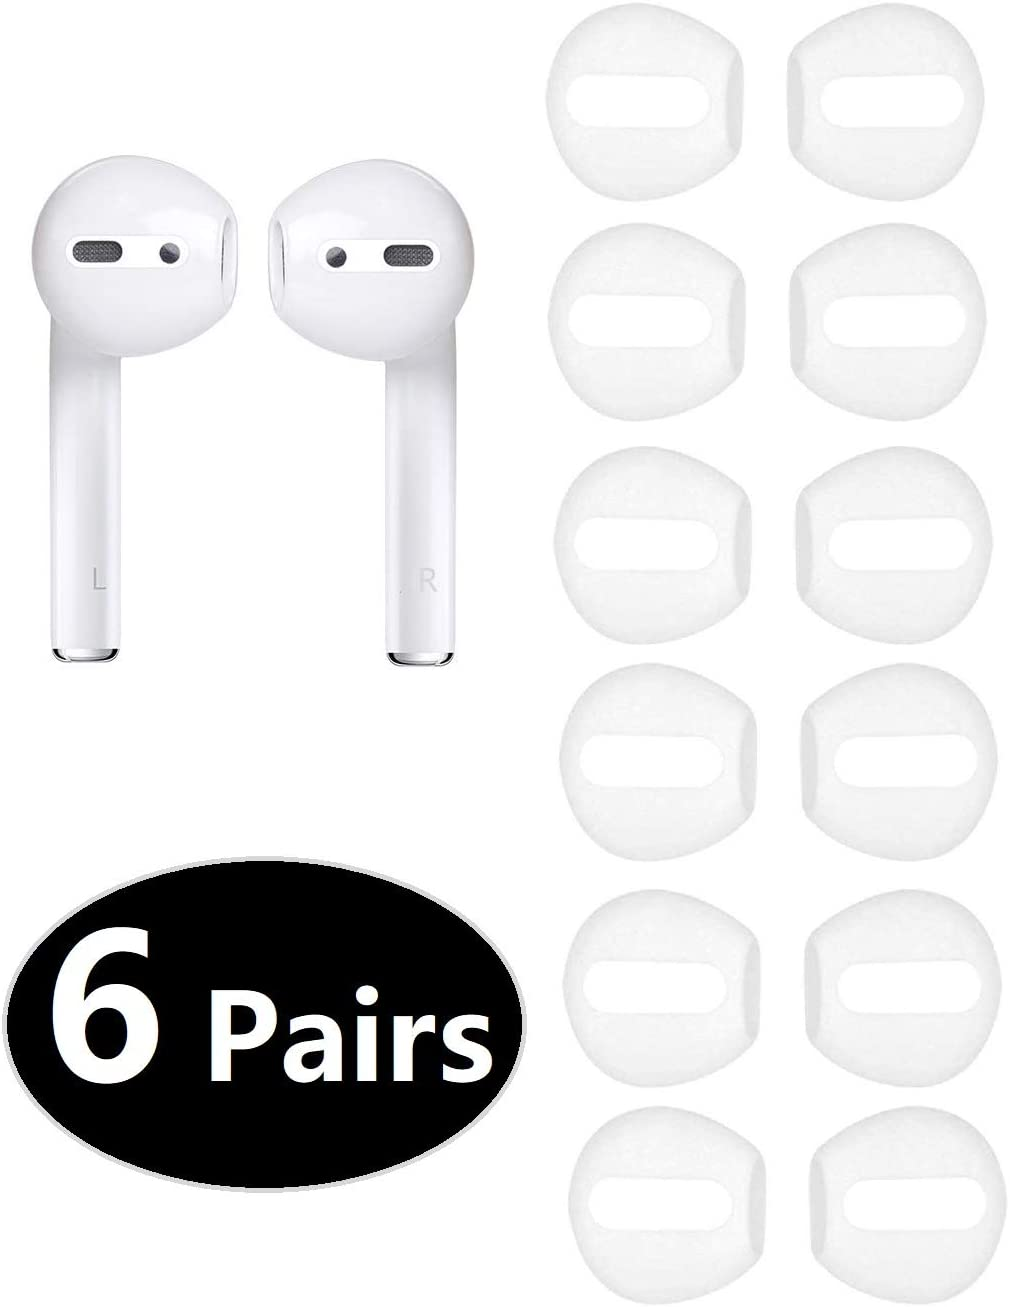 Earbud Cover Accessories Ear Tips Earpads for Apple AirPods JNSA AirPods Tips 6 Pairs White Fit in The Case 12PCS